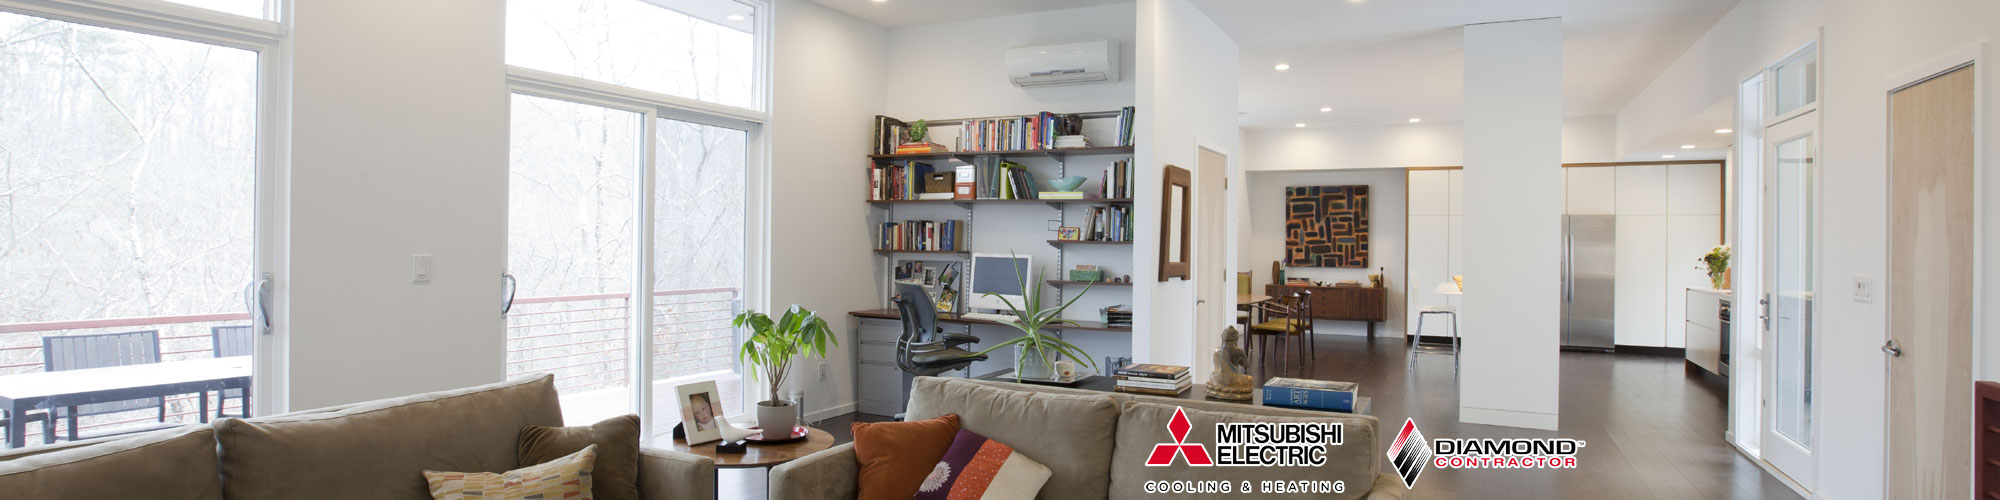 Mitsubishi Ductless Mitsubishi Diamond Contractor Air Repair Heating Amp Ac Ductless